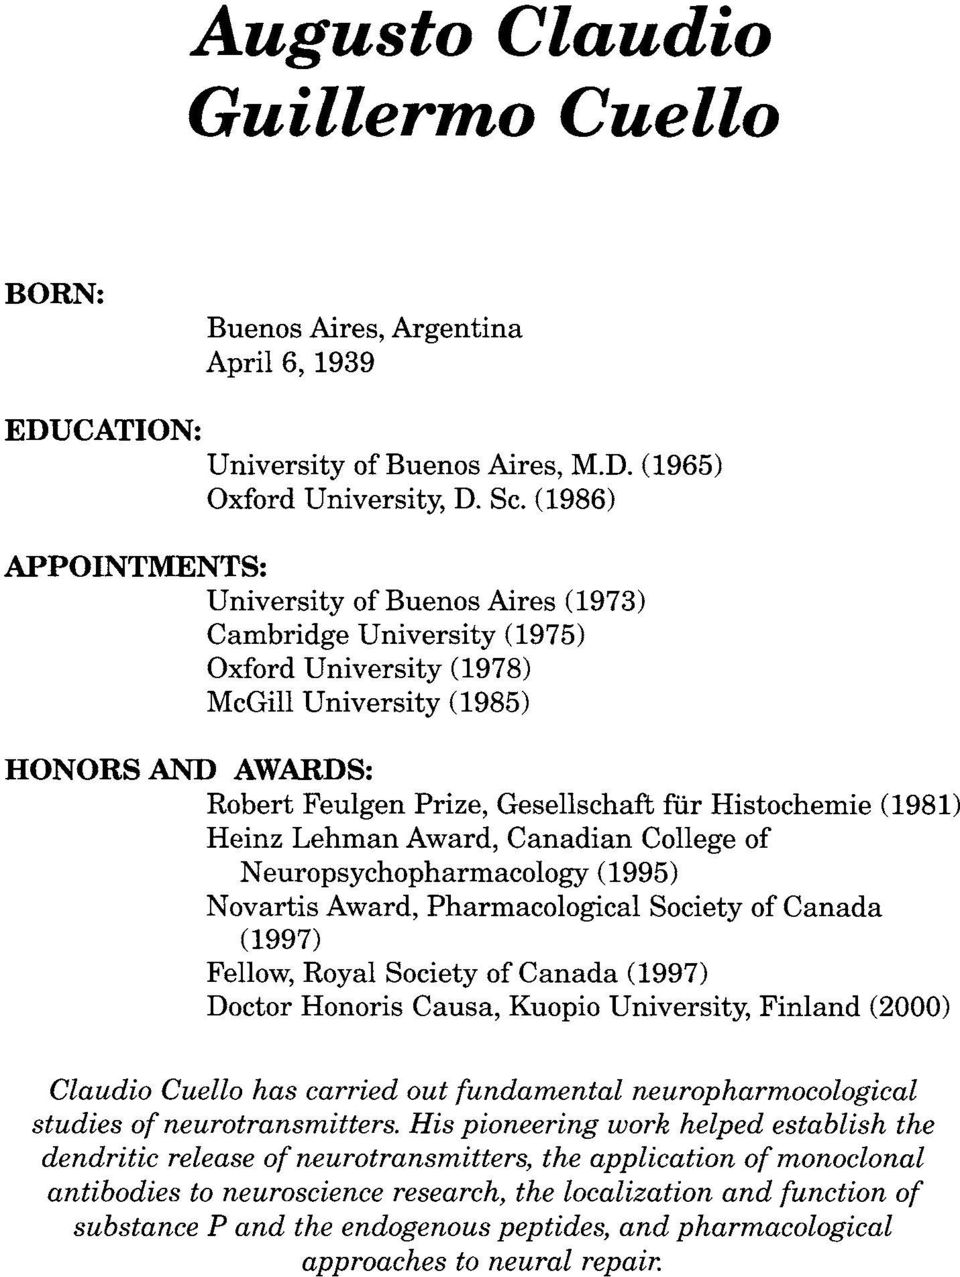 Histochemie (1981) Heinz Lehman Award, Canadian College of Neuropsychopharmacology (1995) Novartis Award, Pharmacological Society of Canada (1997) Fellow, Royal Society of Canada (1997) Doctor